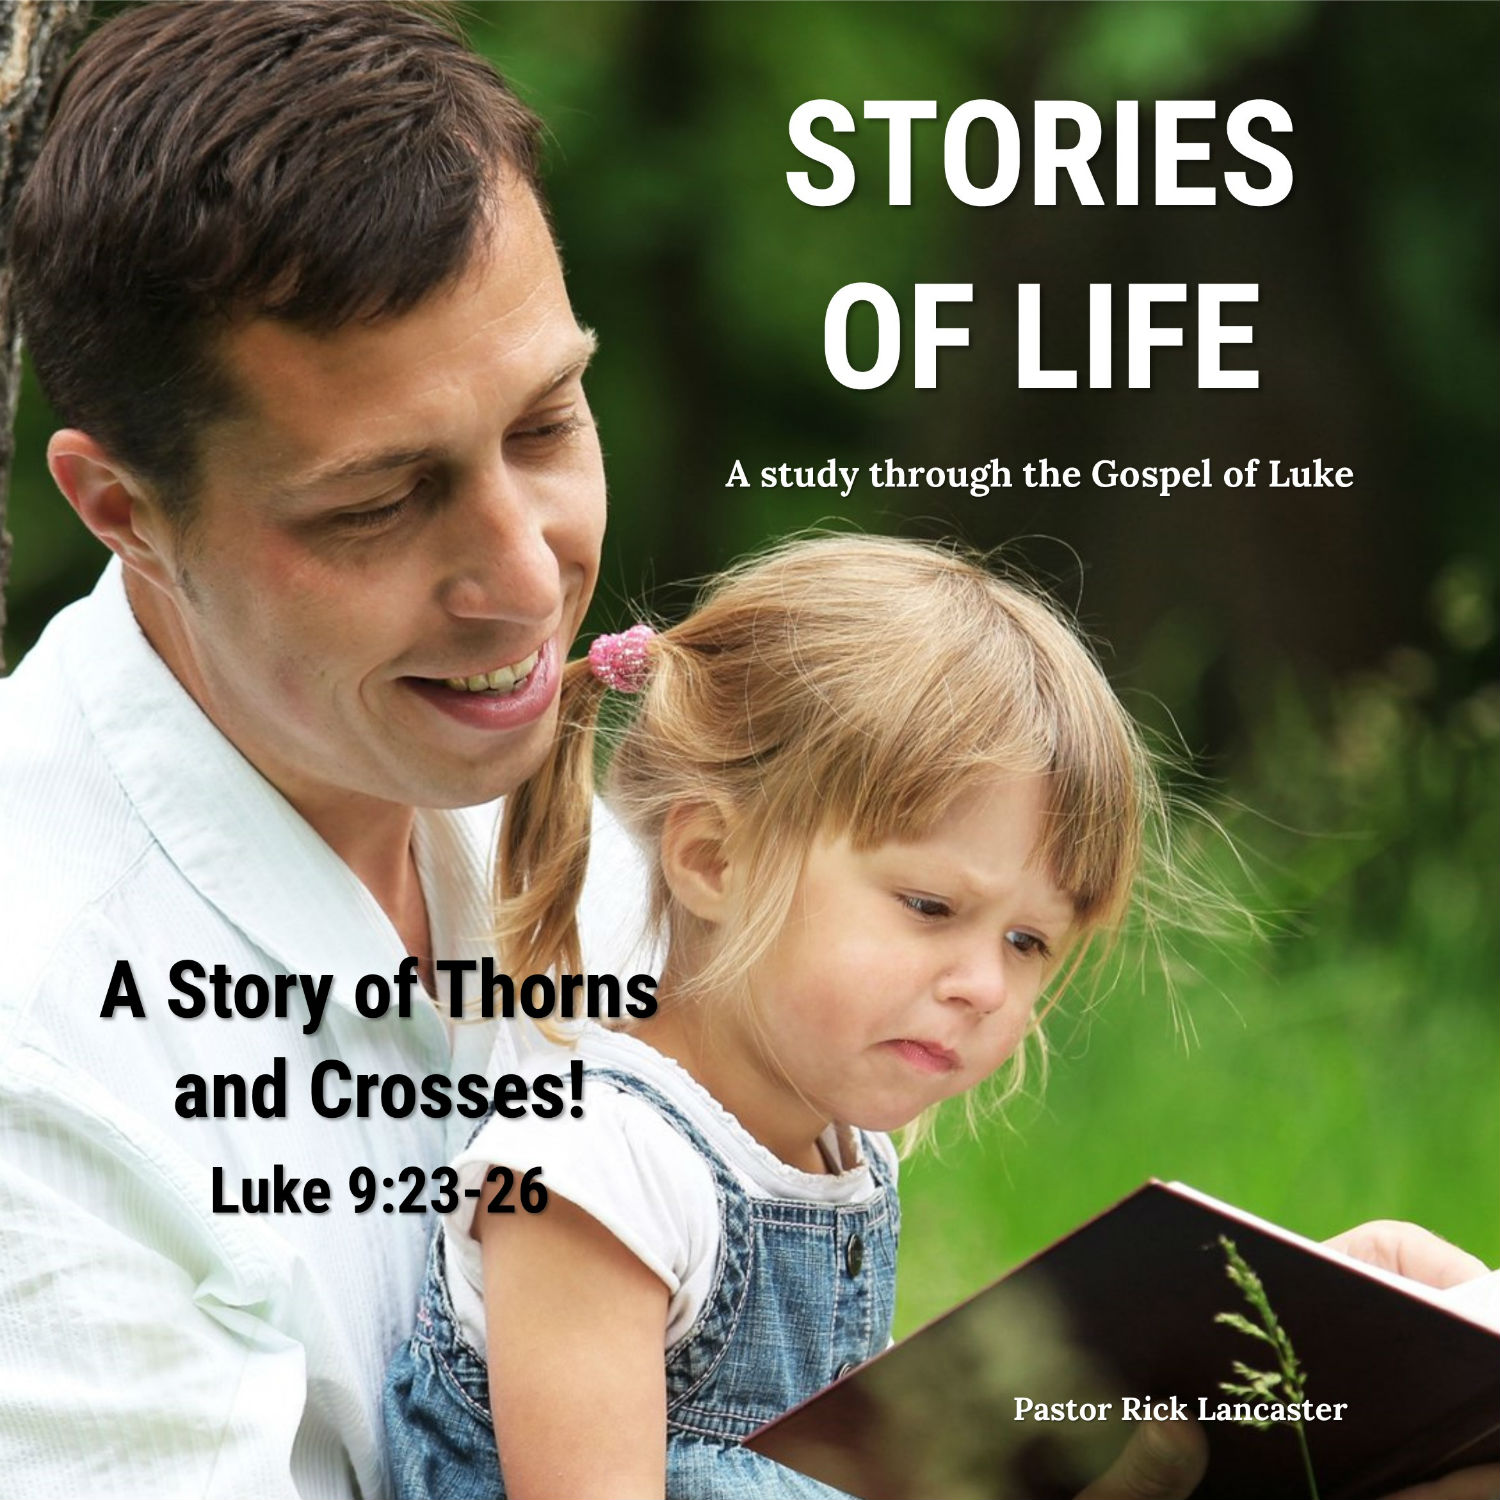 A Story of Thorns and Crosses – Luke 9:23-26 Image